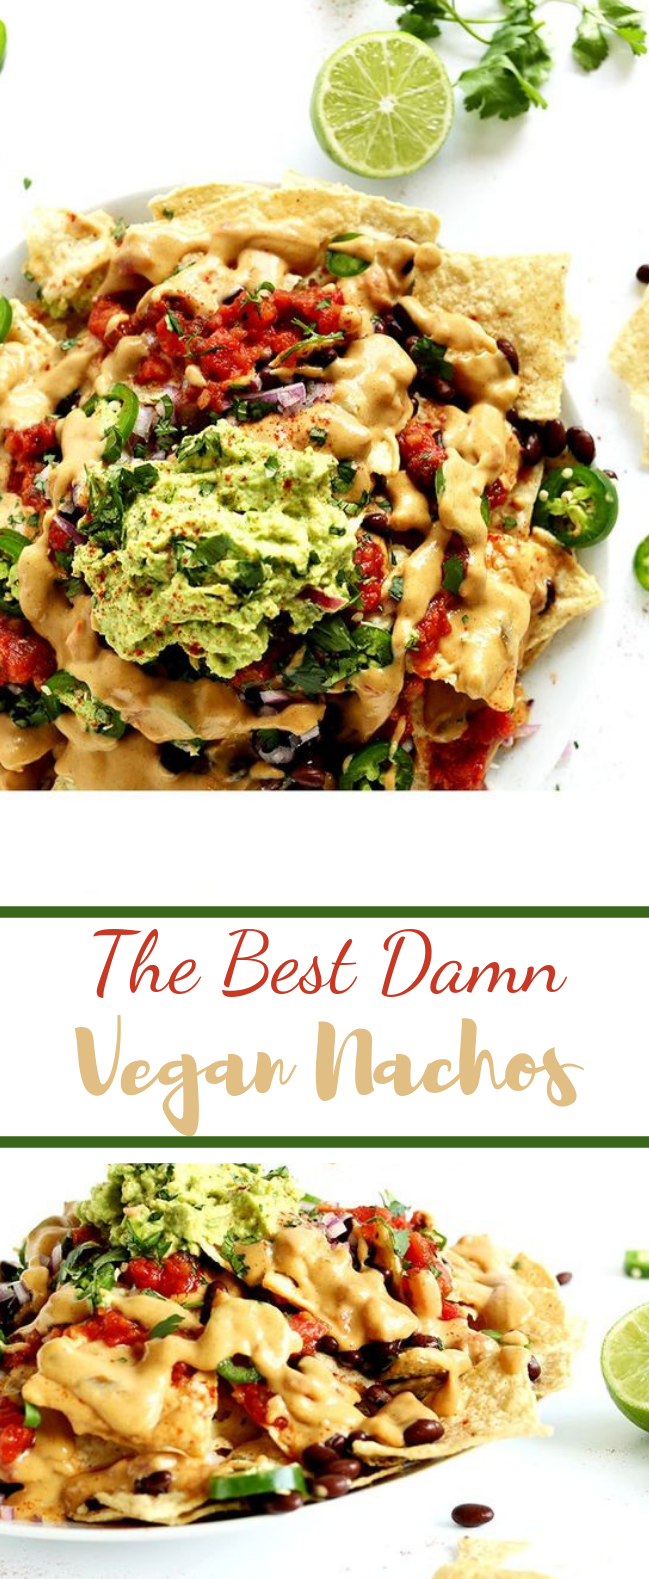 The Best Damn Vegan Nachos #mexicanfood #vegetarian